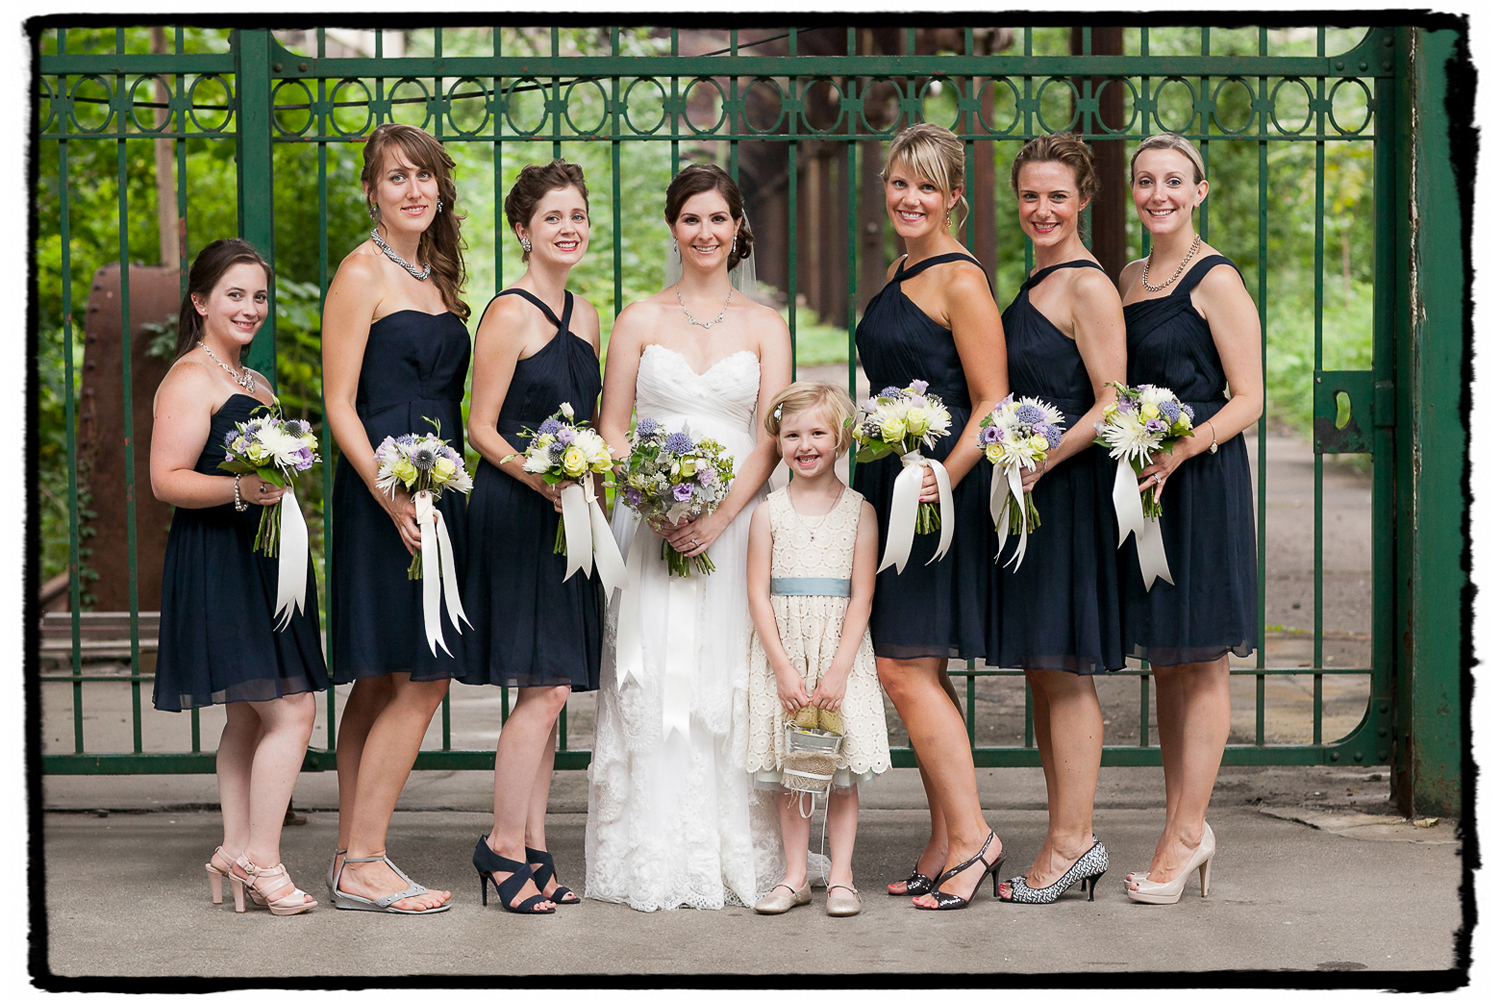 Lauren and her bridesmaids and flowergirl looked lovely at this Liberty House wedding in Jersey City.